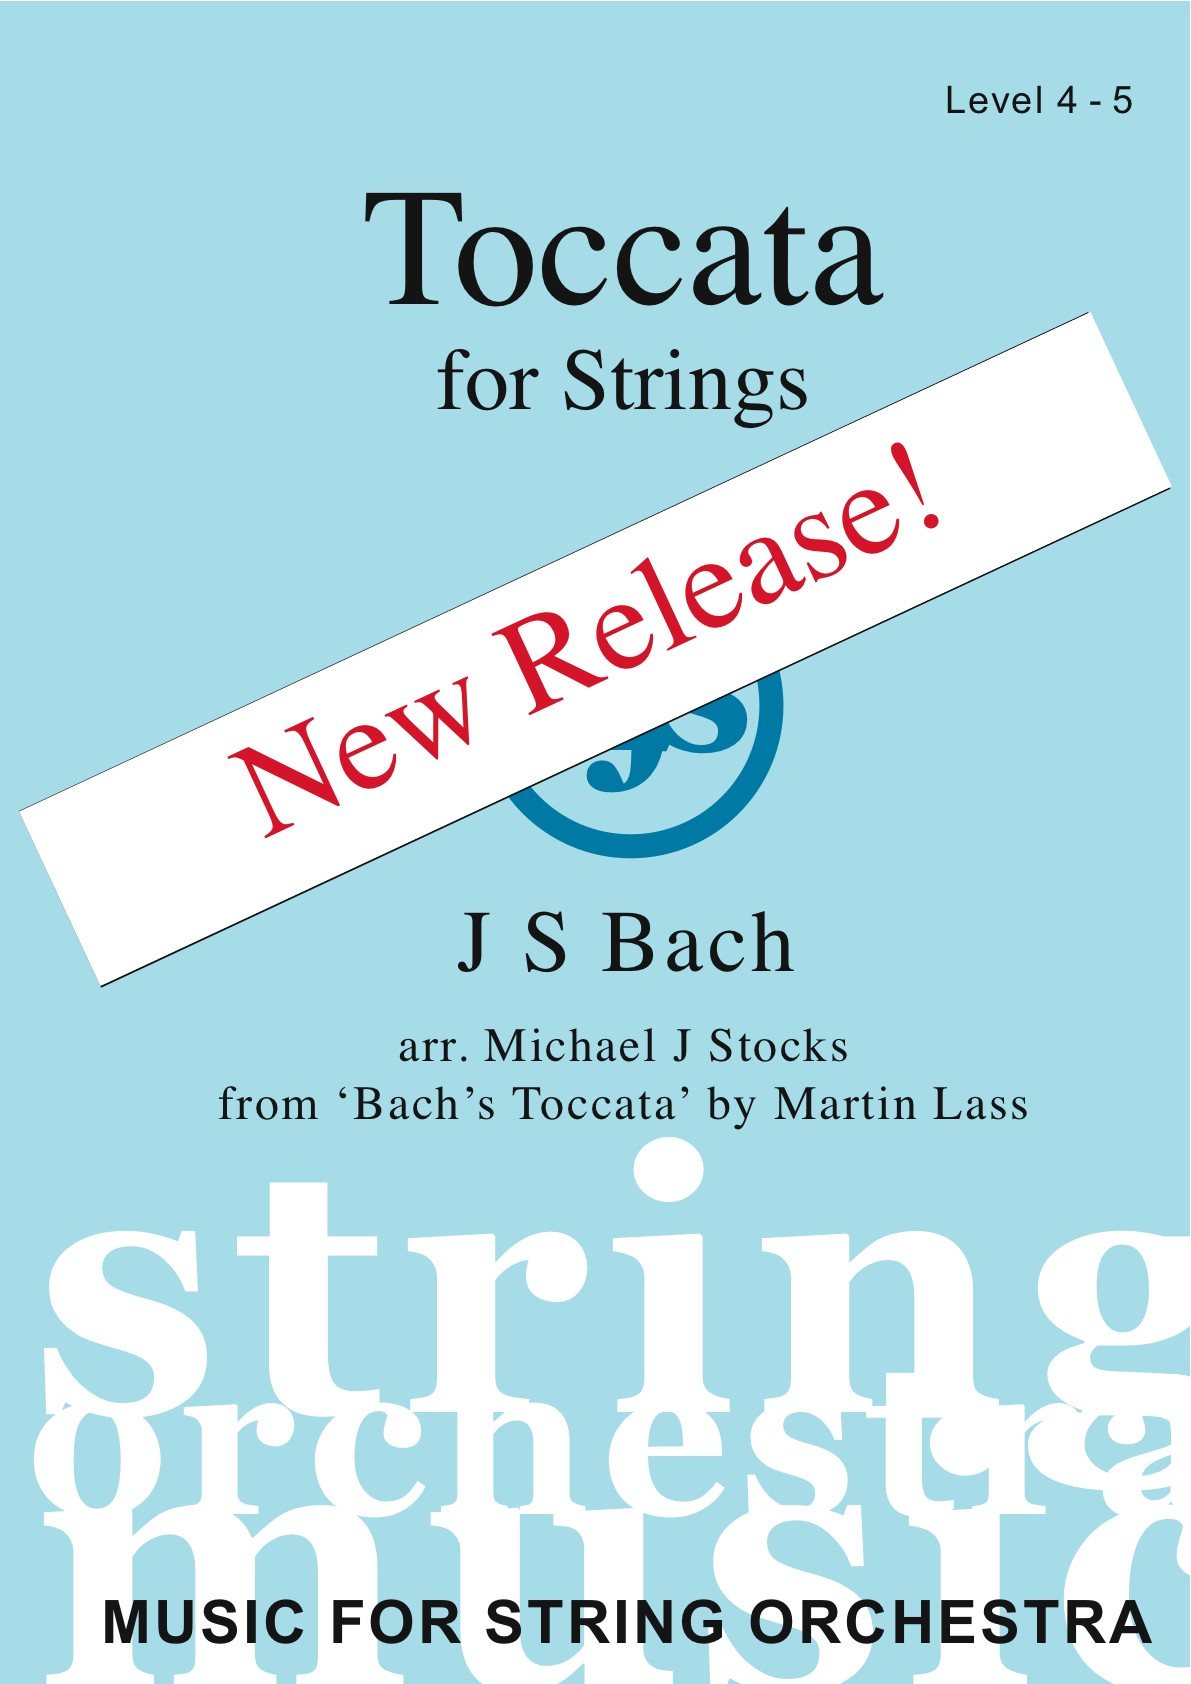 Toccata for Strings (level 4-5) - Includes backing CD